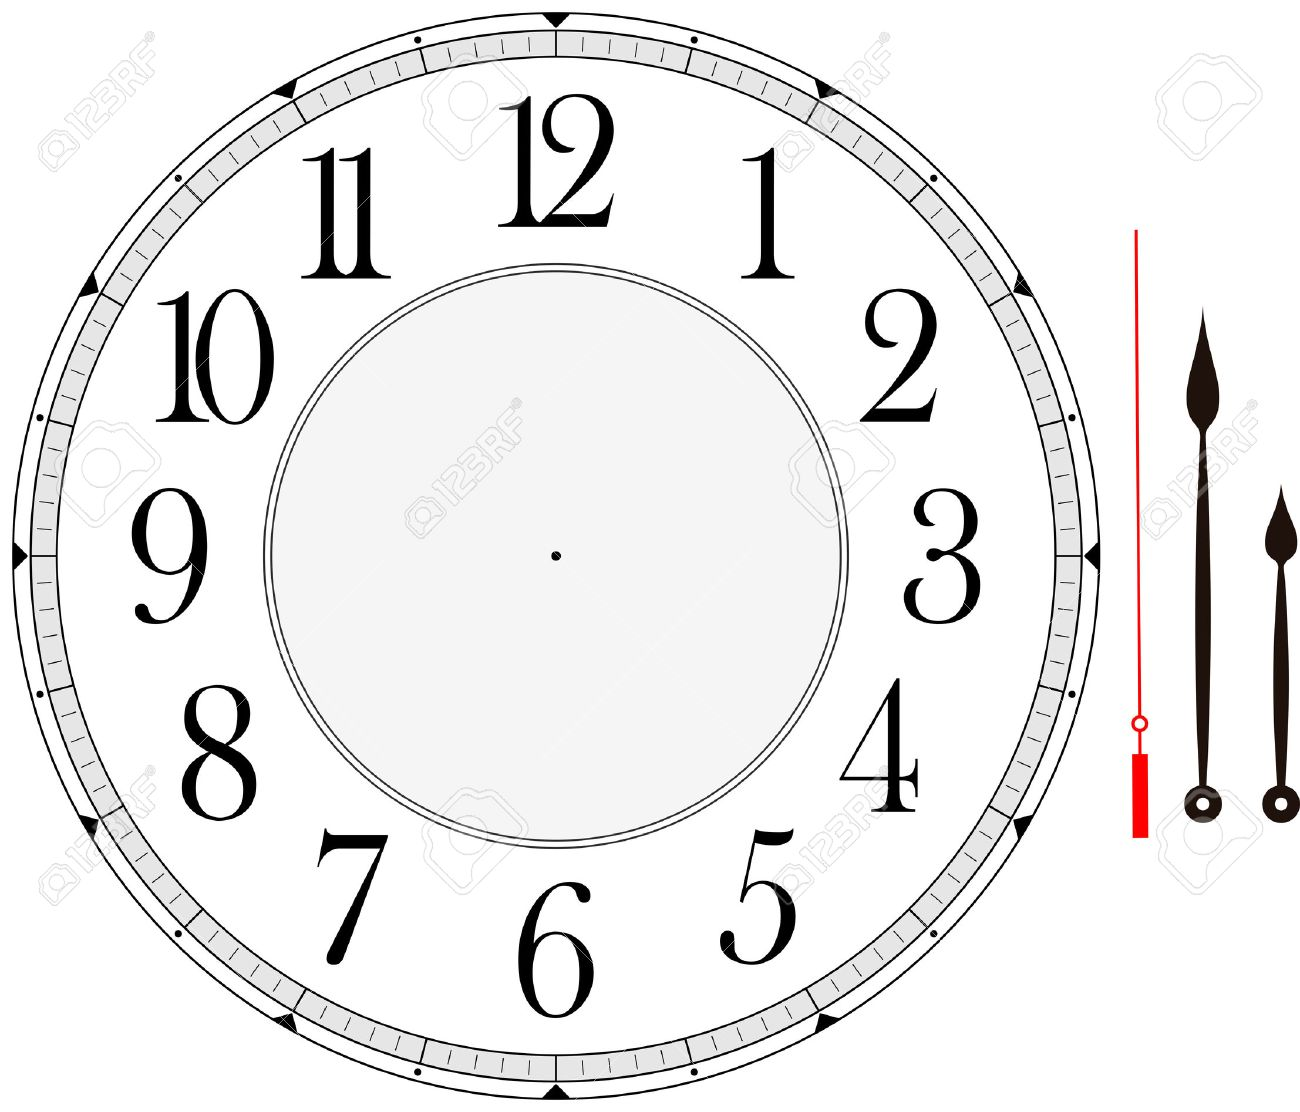 Clock Face Template With Hour Minute And Second Hands To Make